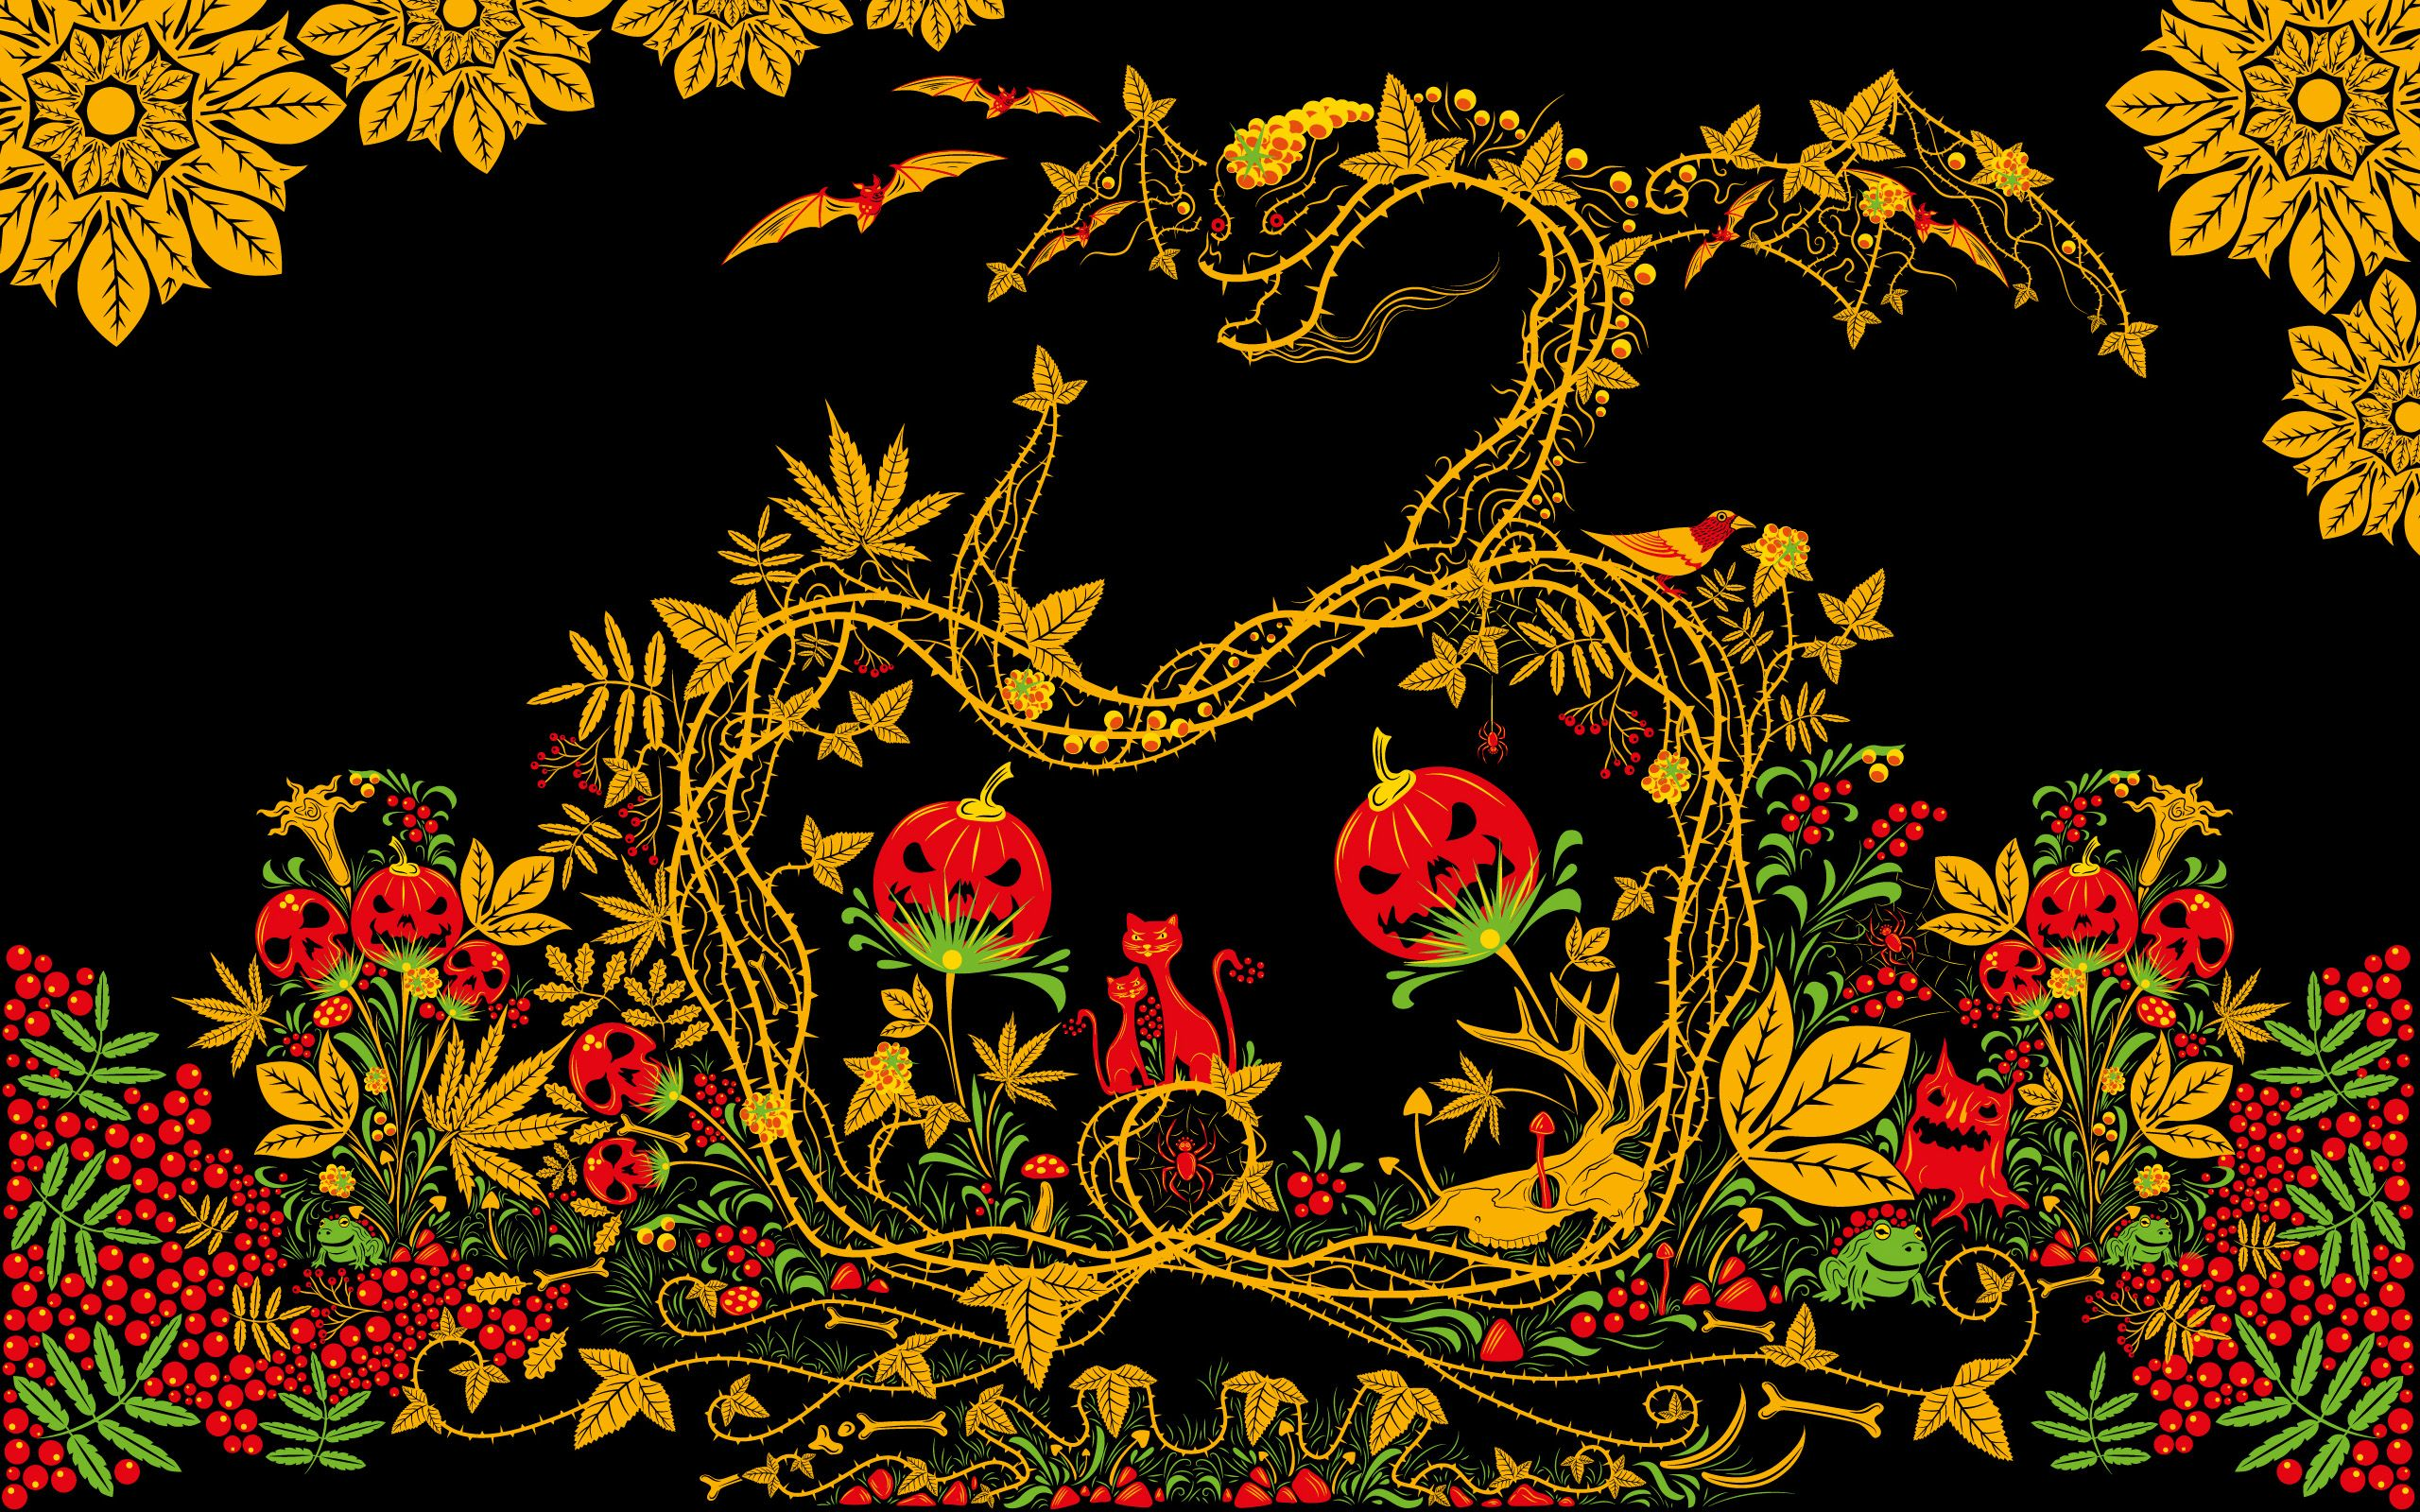 Halloween Khokhloma Free Psychedelic Wallpaper Andrei Verner